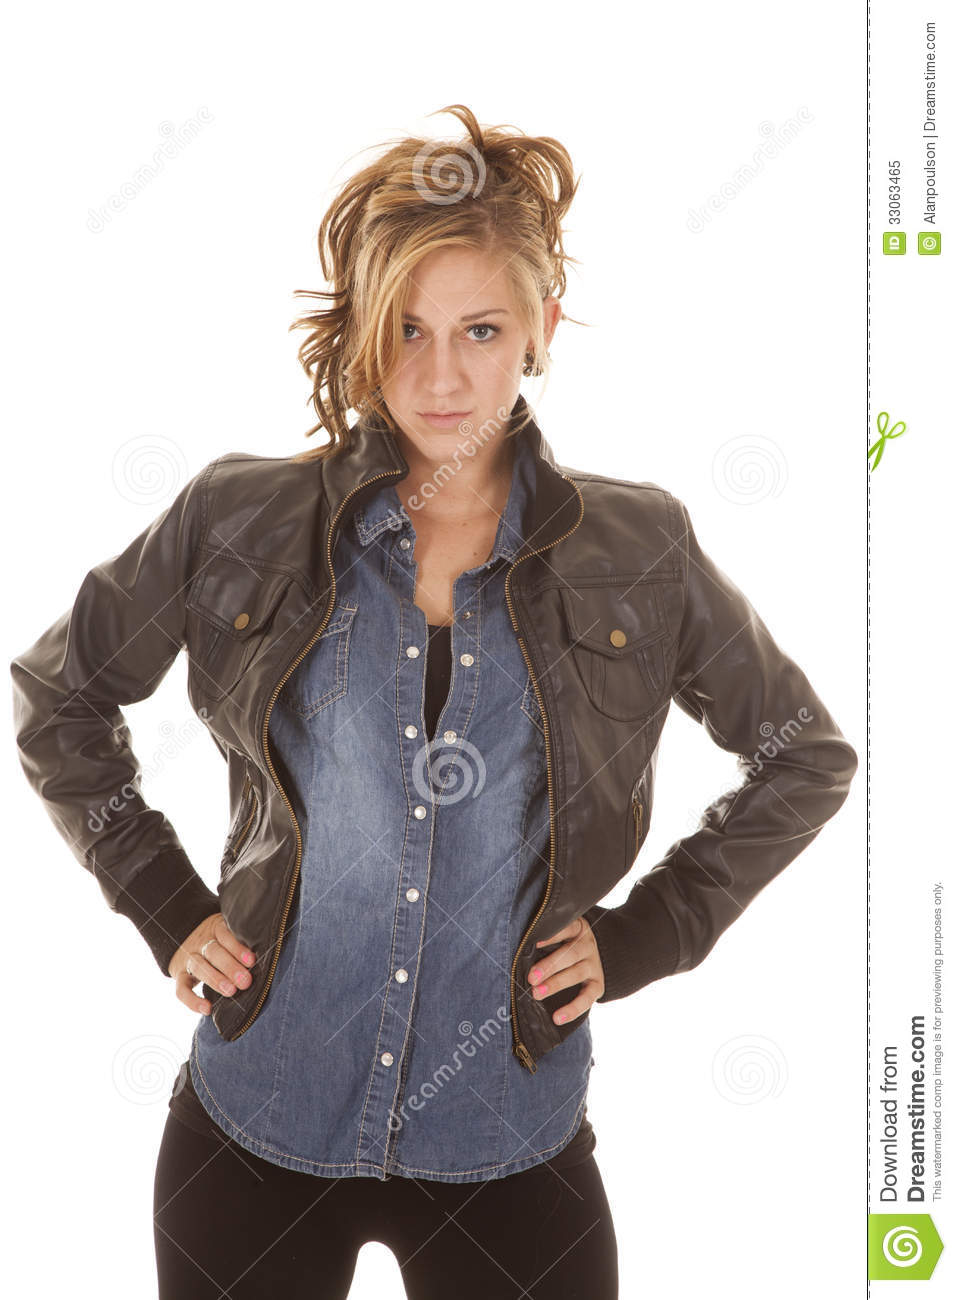 Woman black jacket denim shirt look stock image image for Leather jacket and shirt